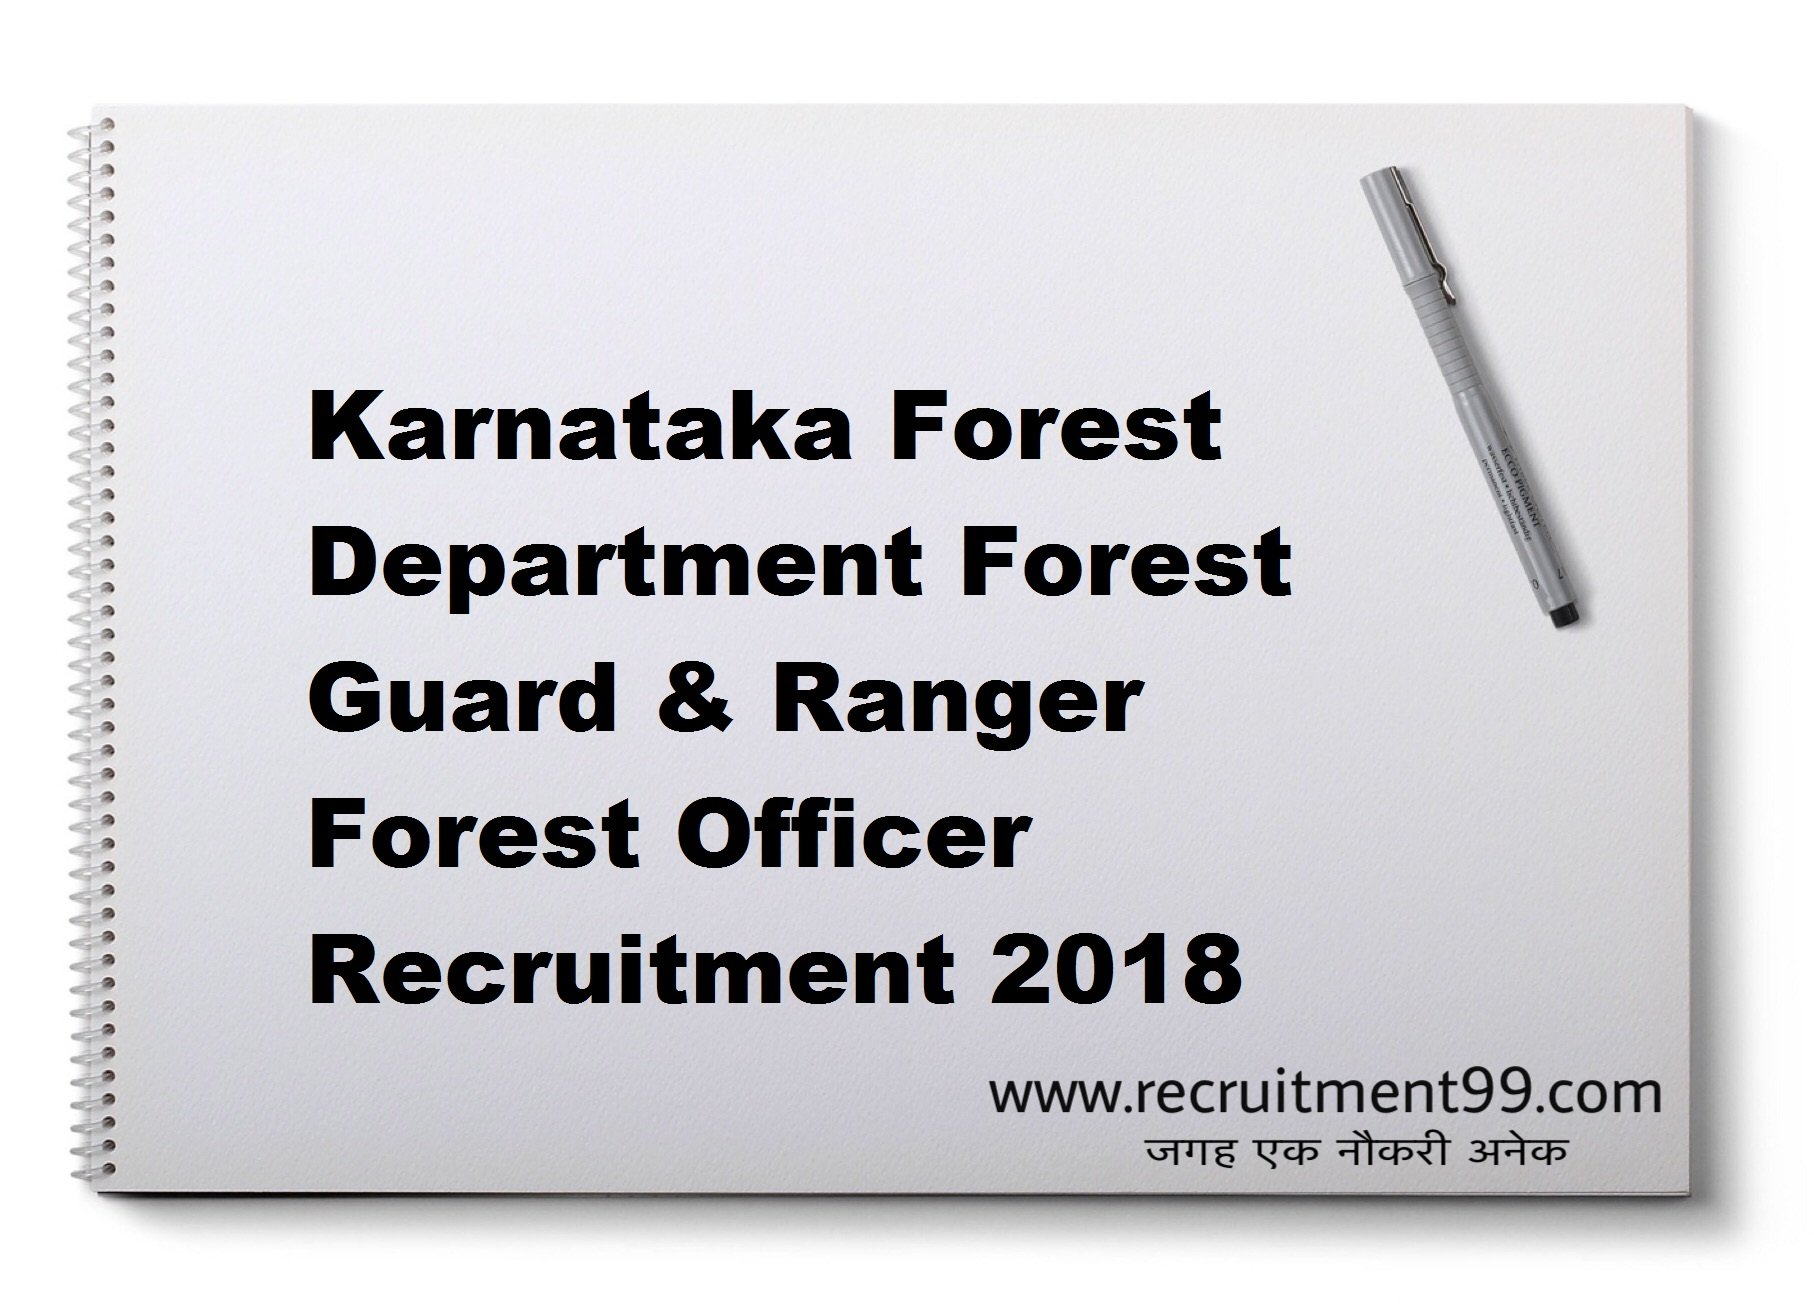 Karnataka Forest Department Forest Guard & Ranger Forest Officer Recruitment Hall Ticket Result 2018